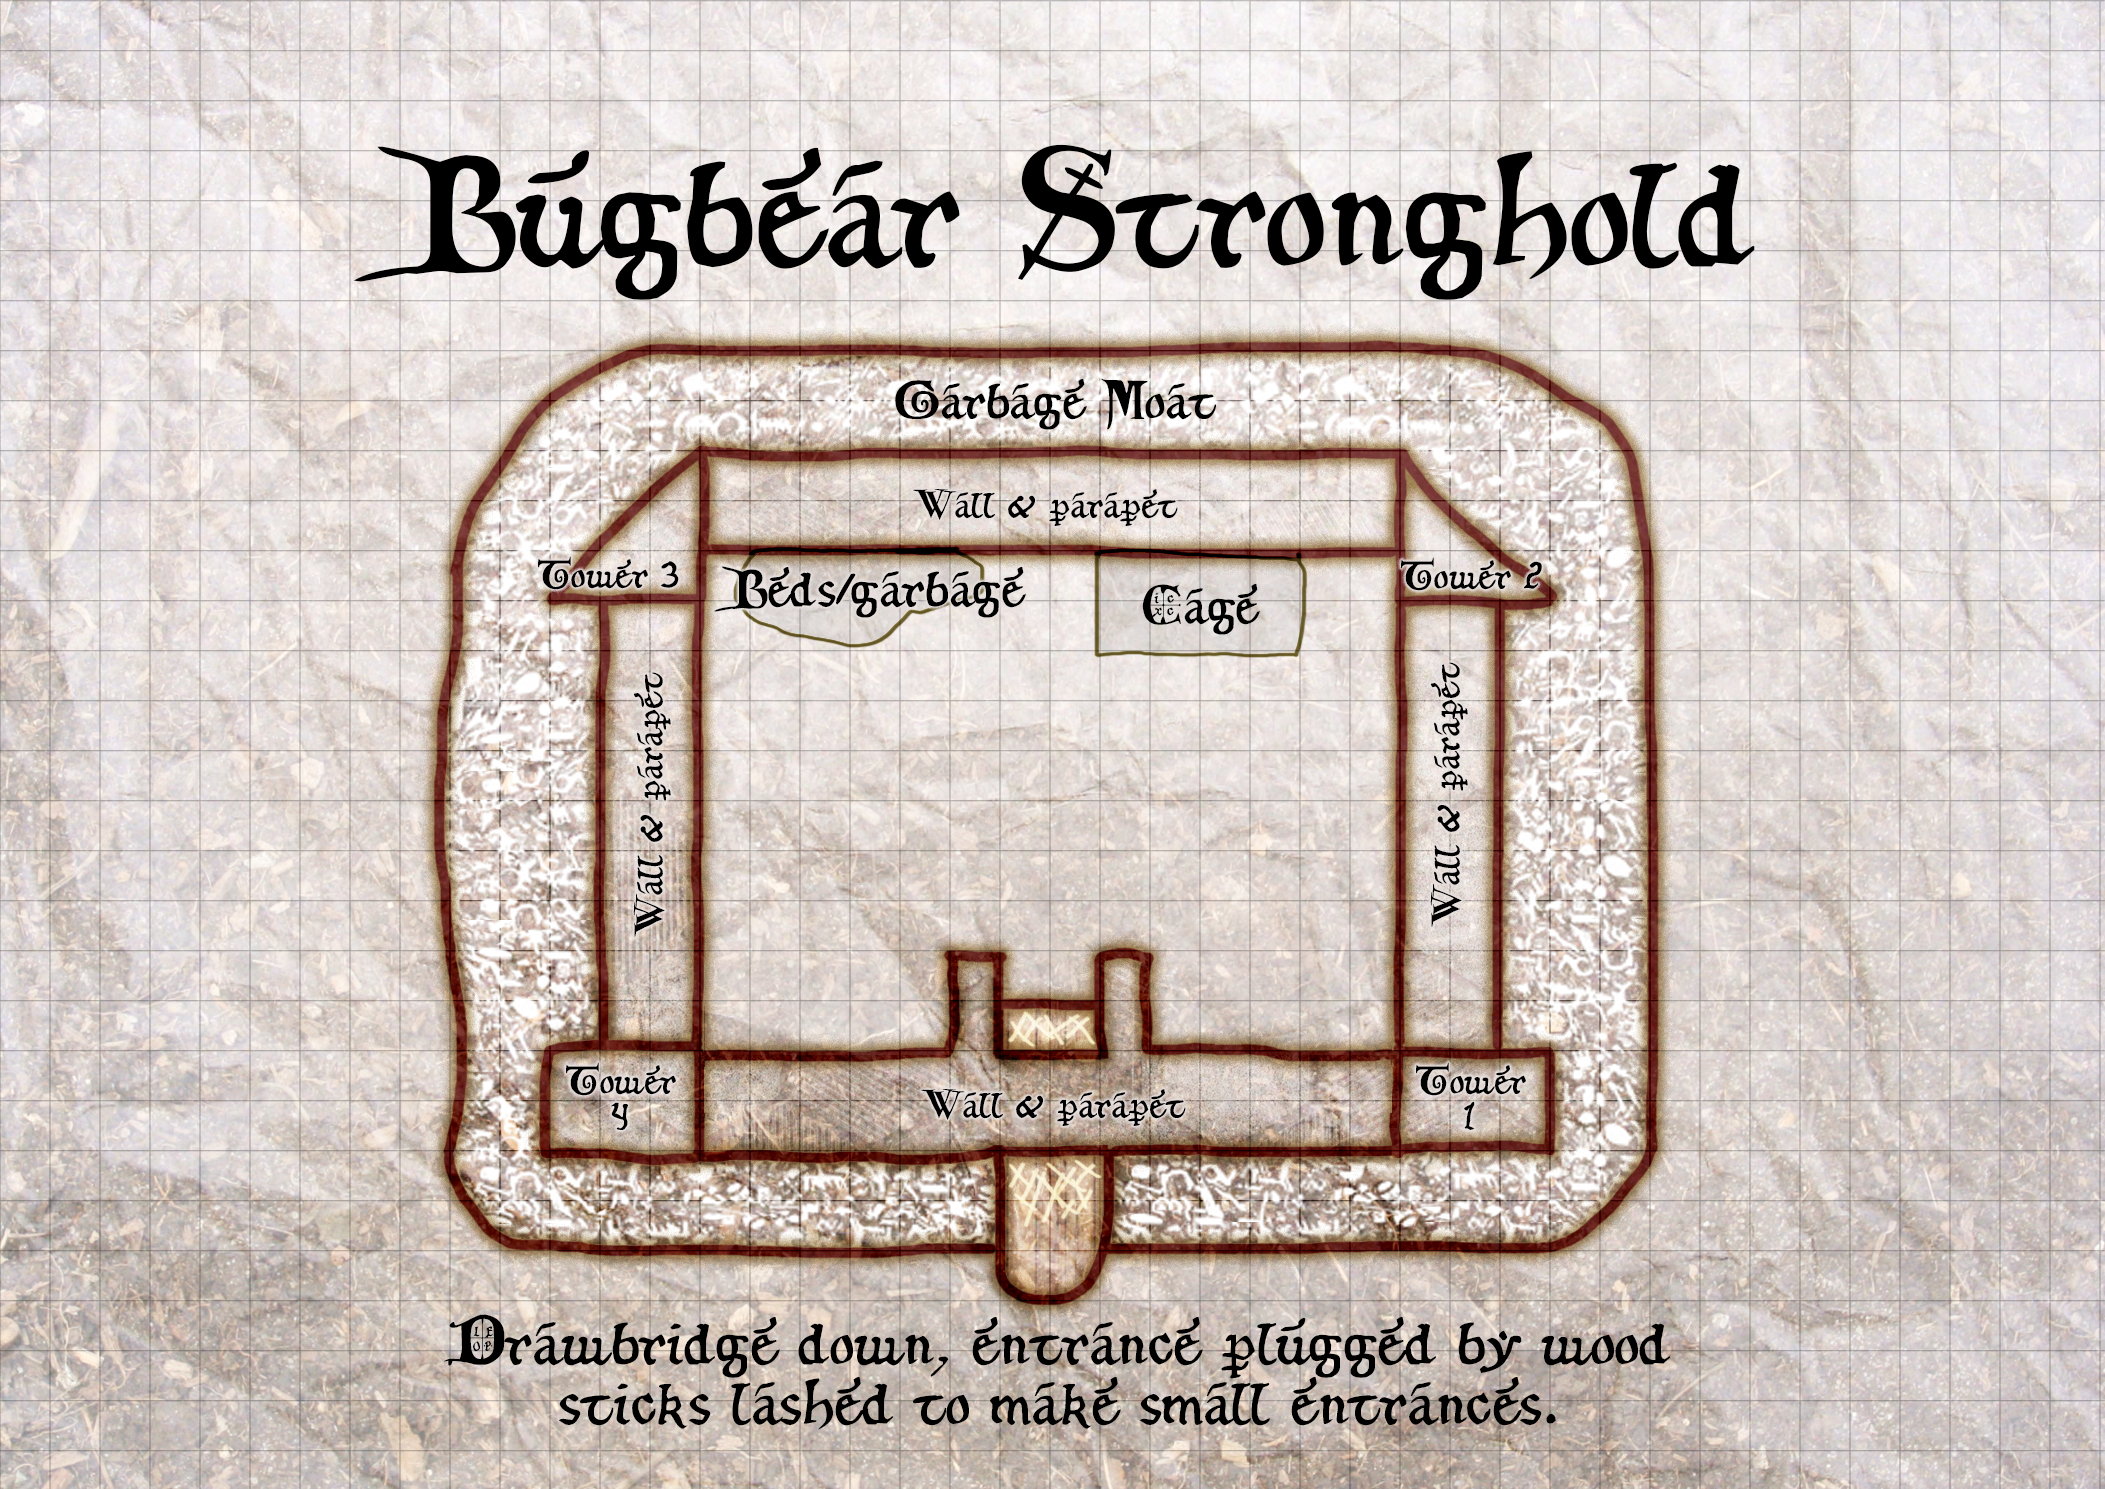 Bugbear Stronghold